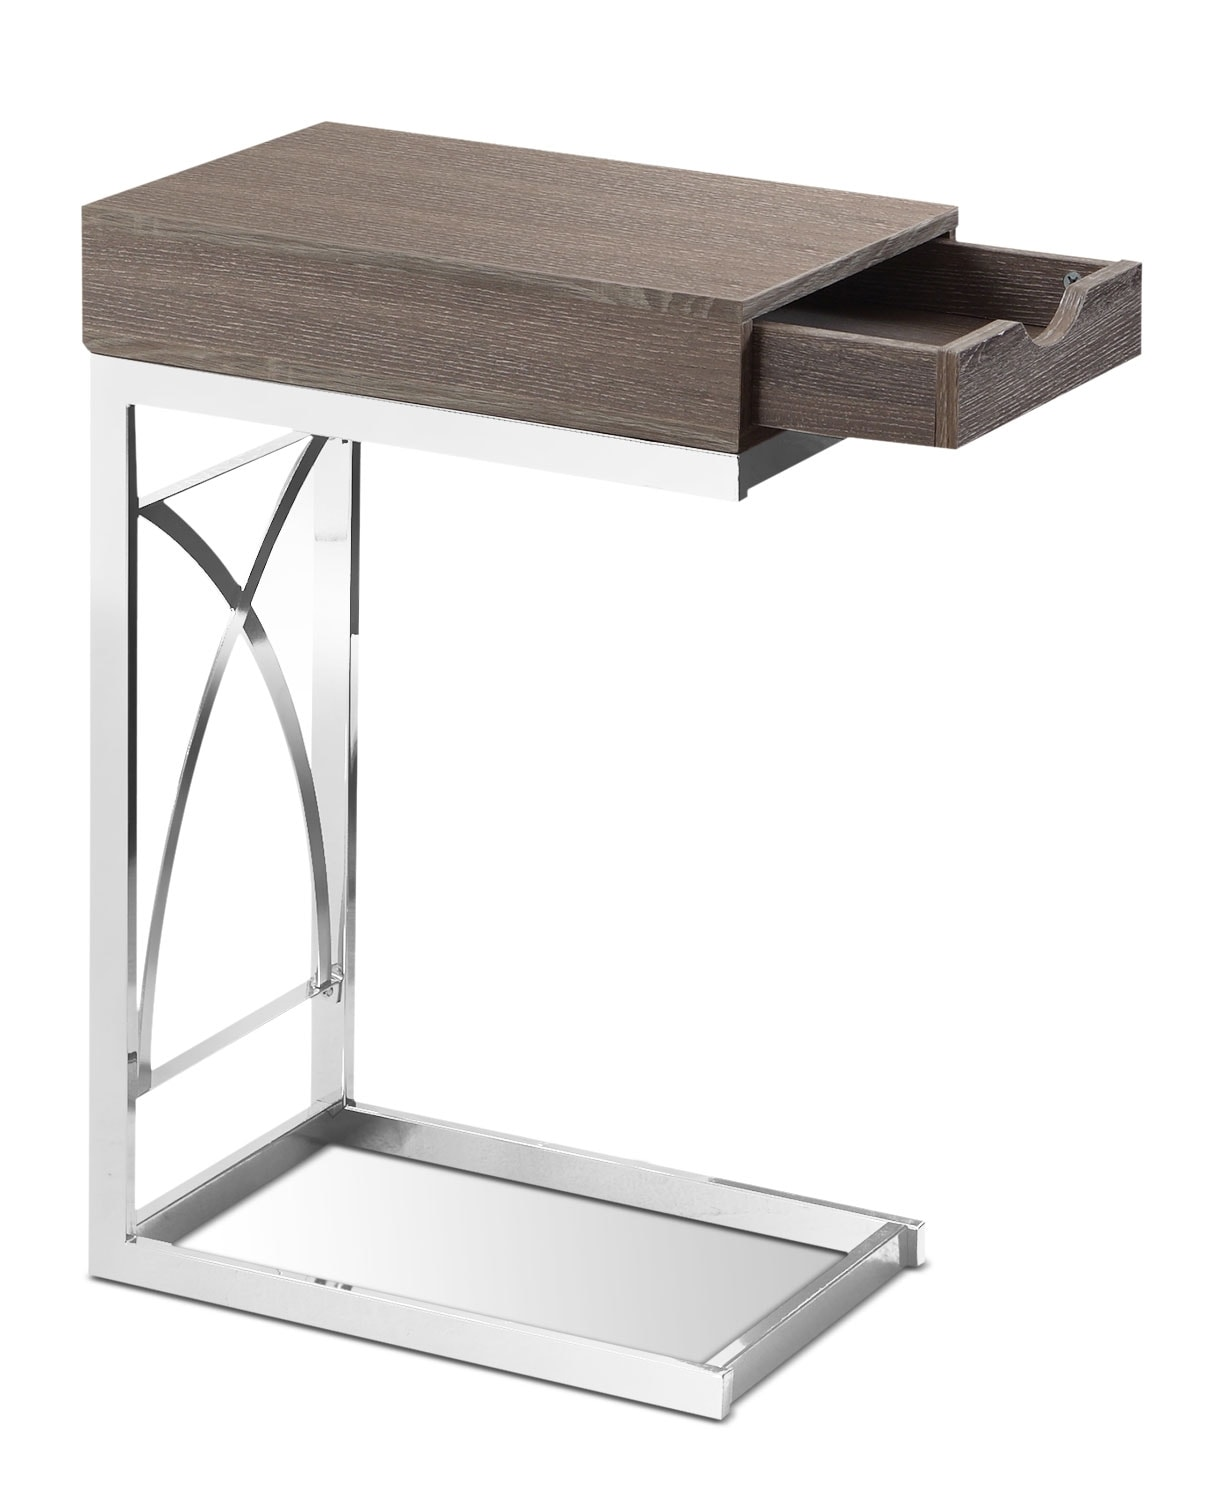 Turin Accent Table – Dark Taupe